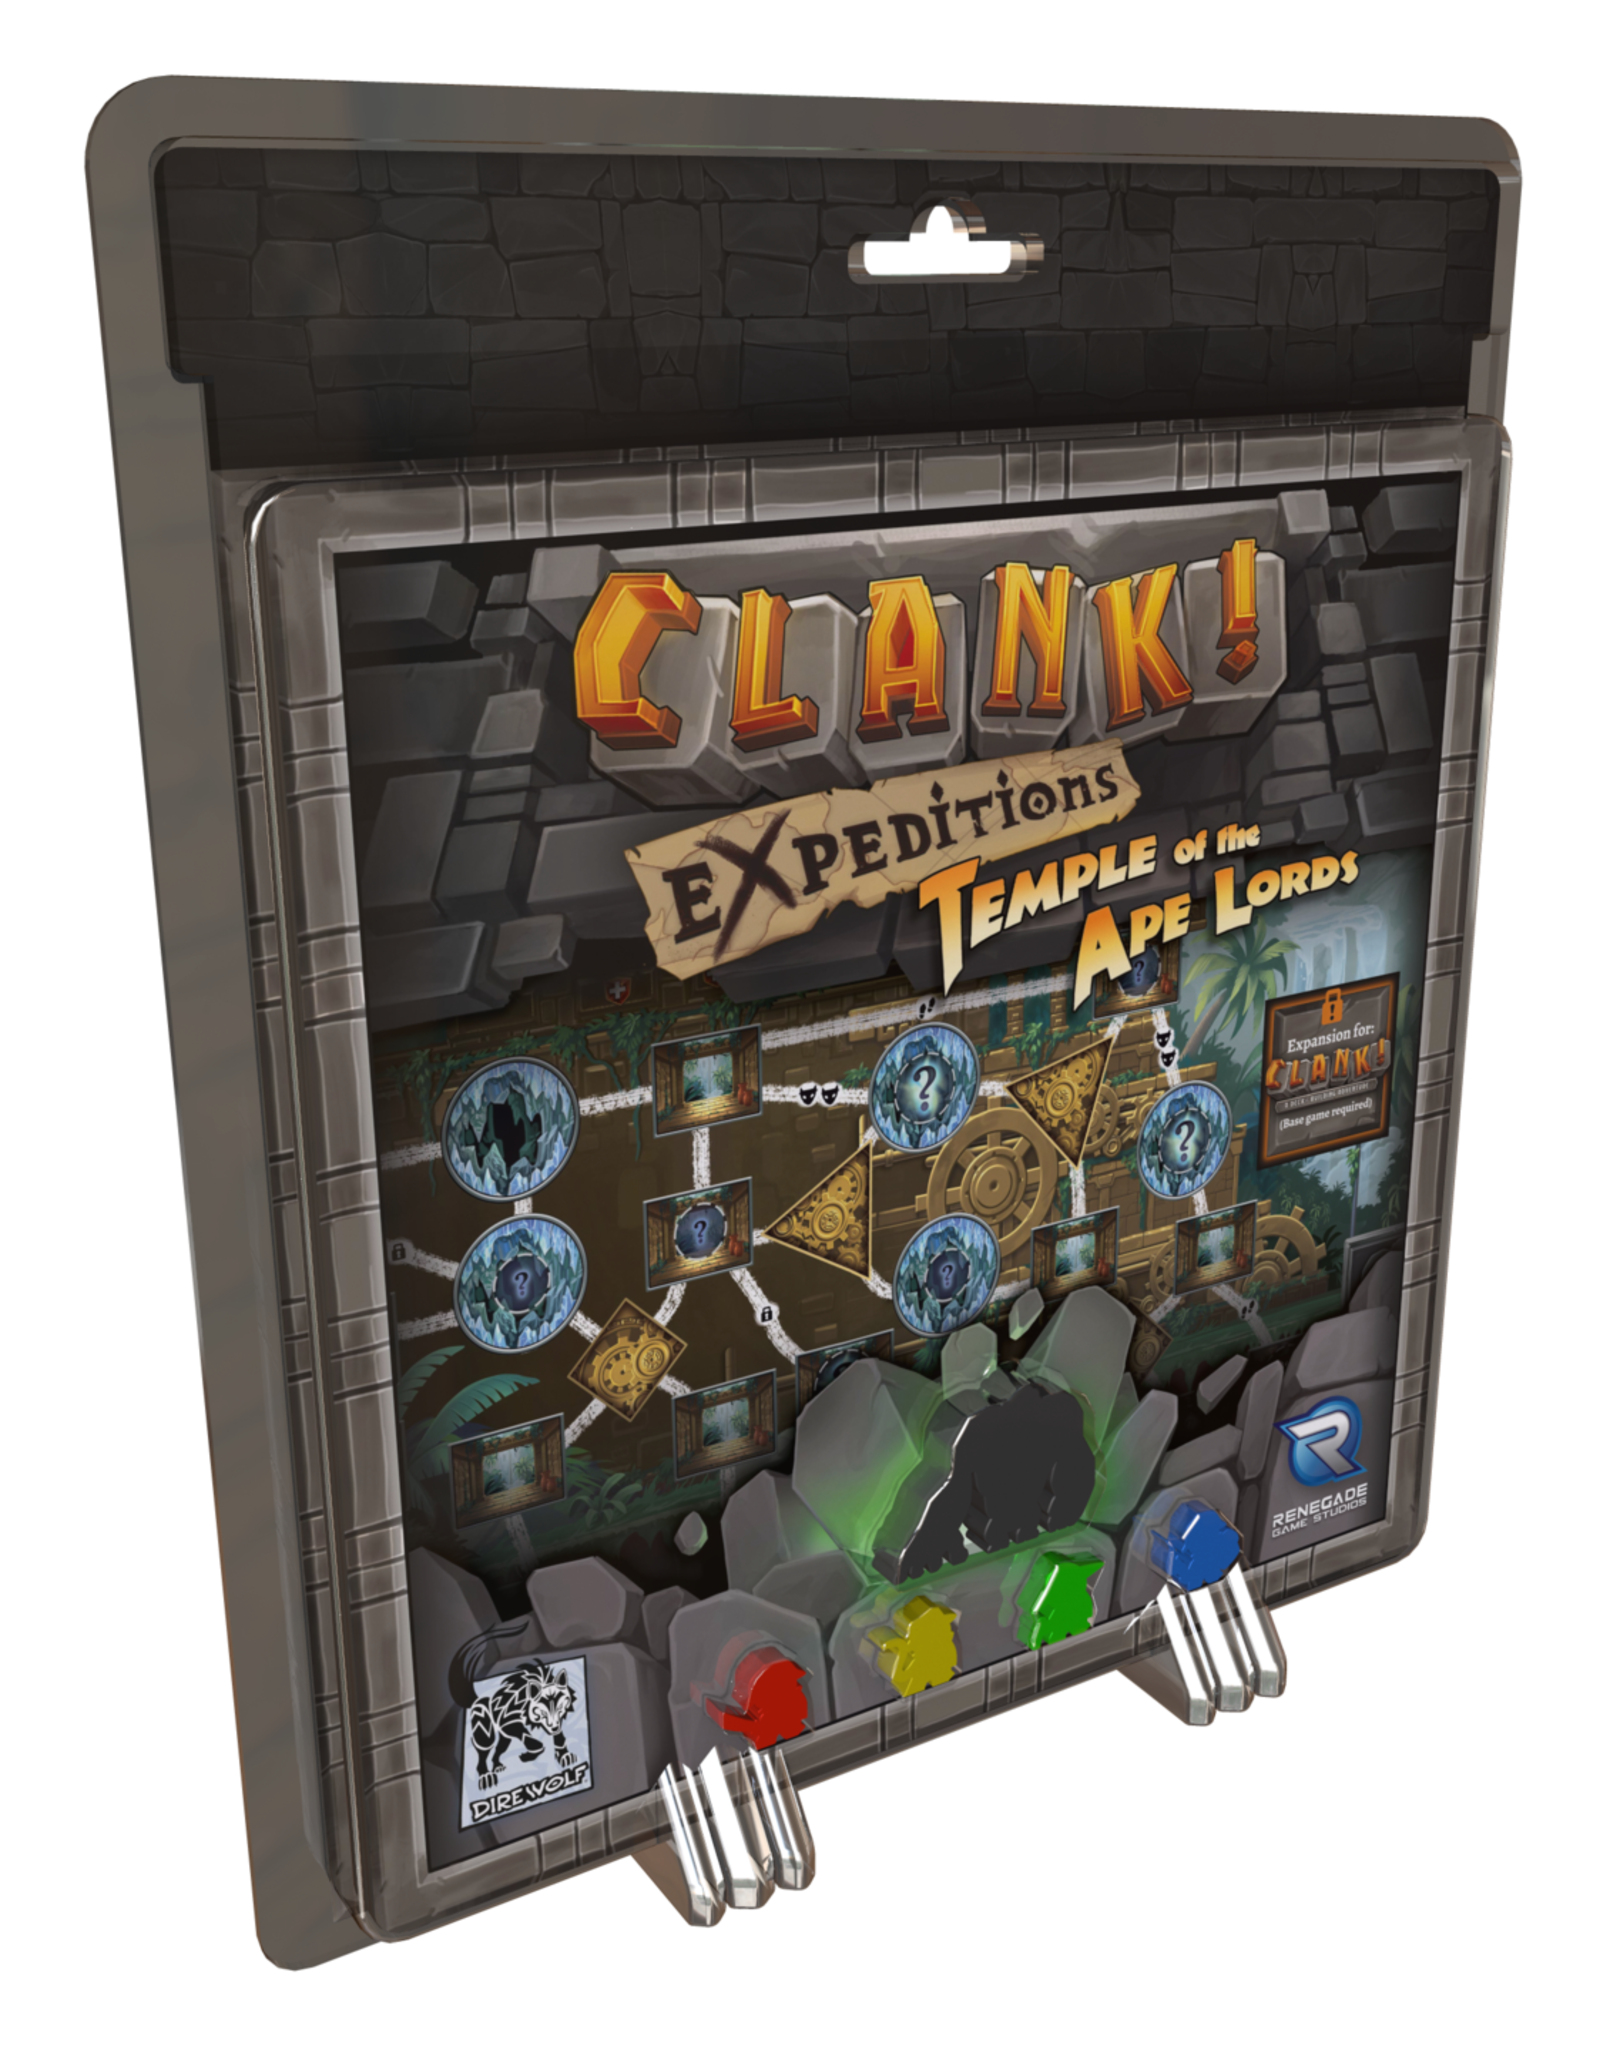 Renegade Clank! Expeditions: Temple of the Ape Lords